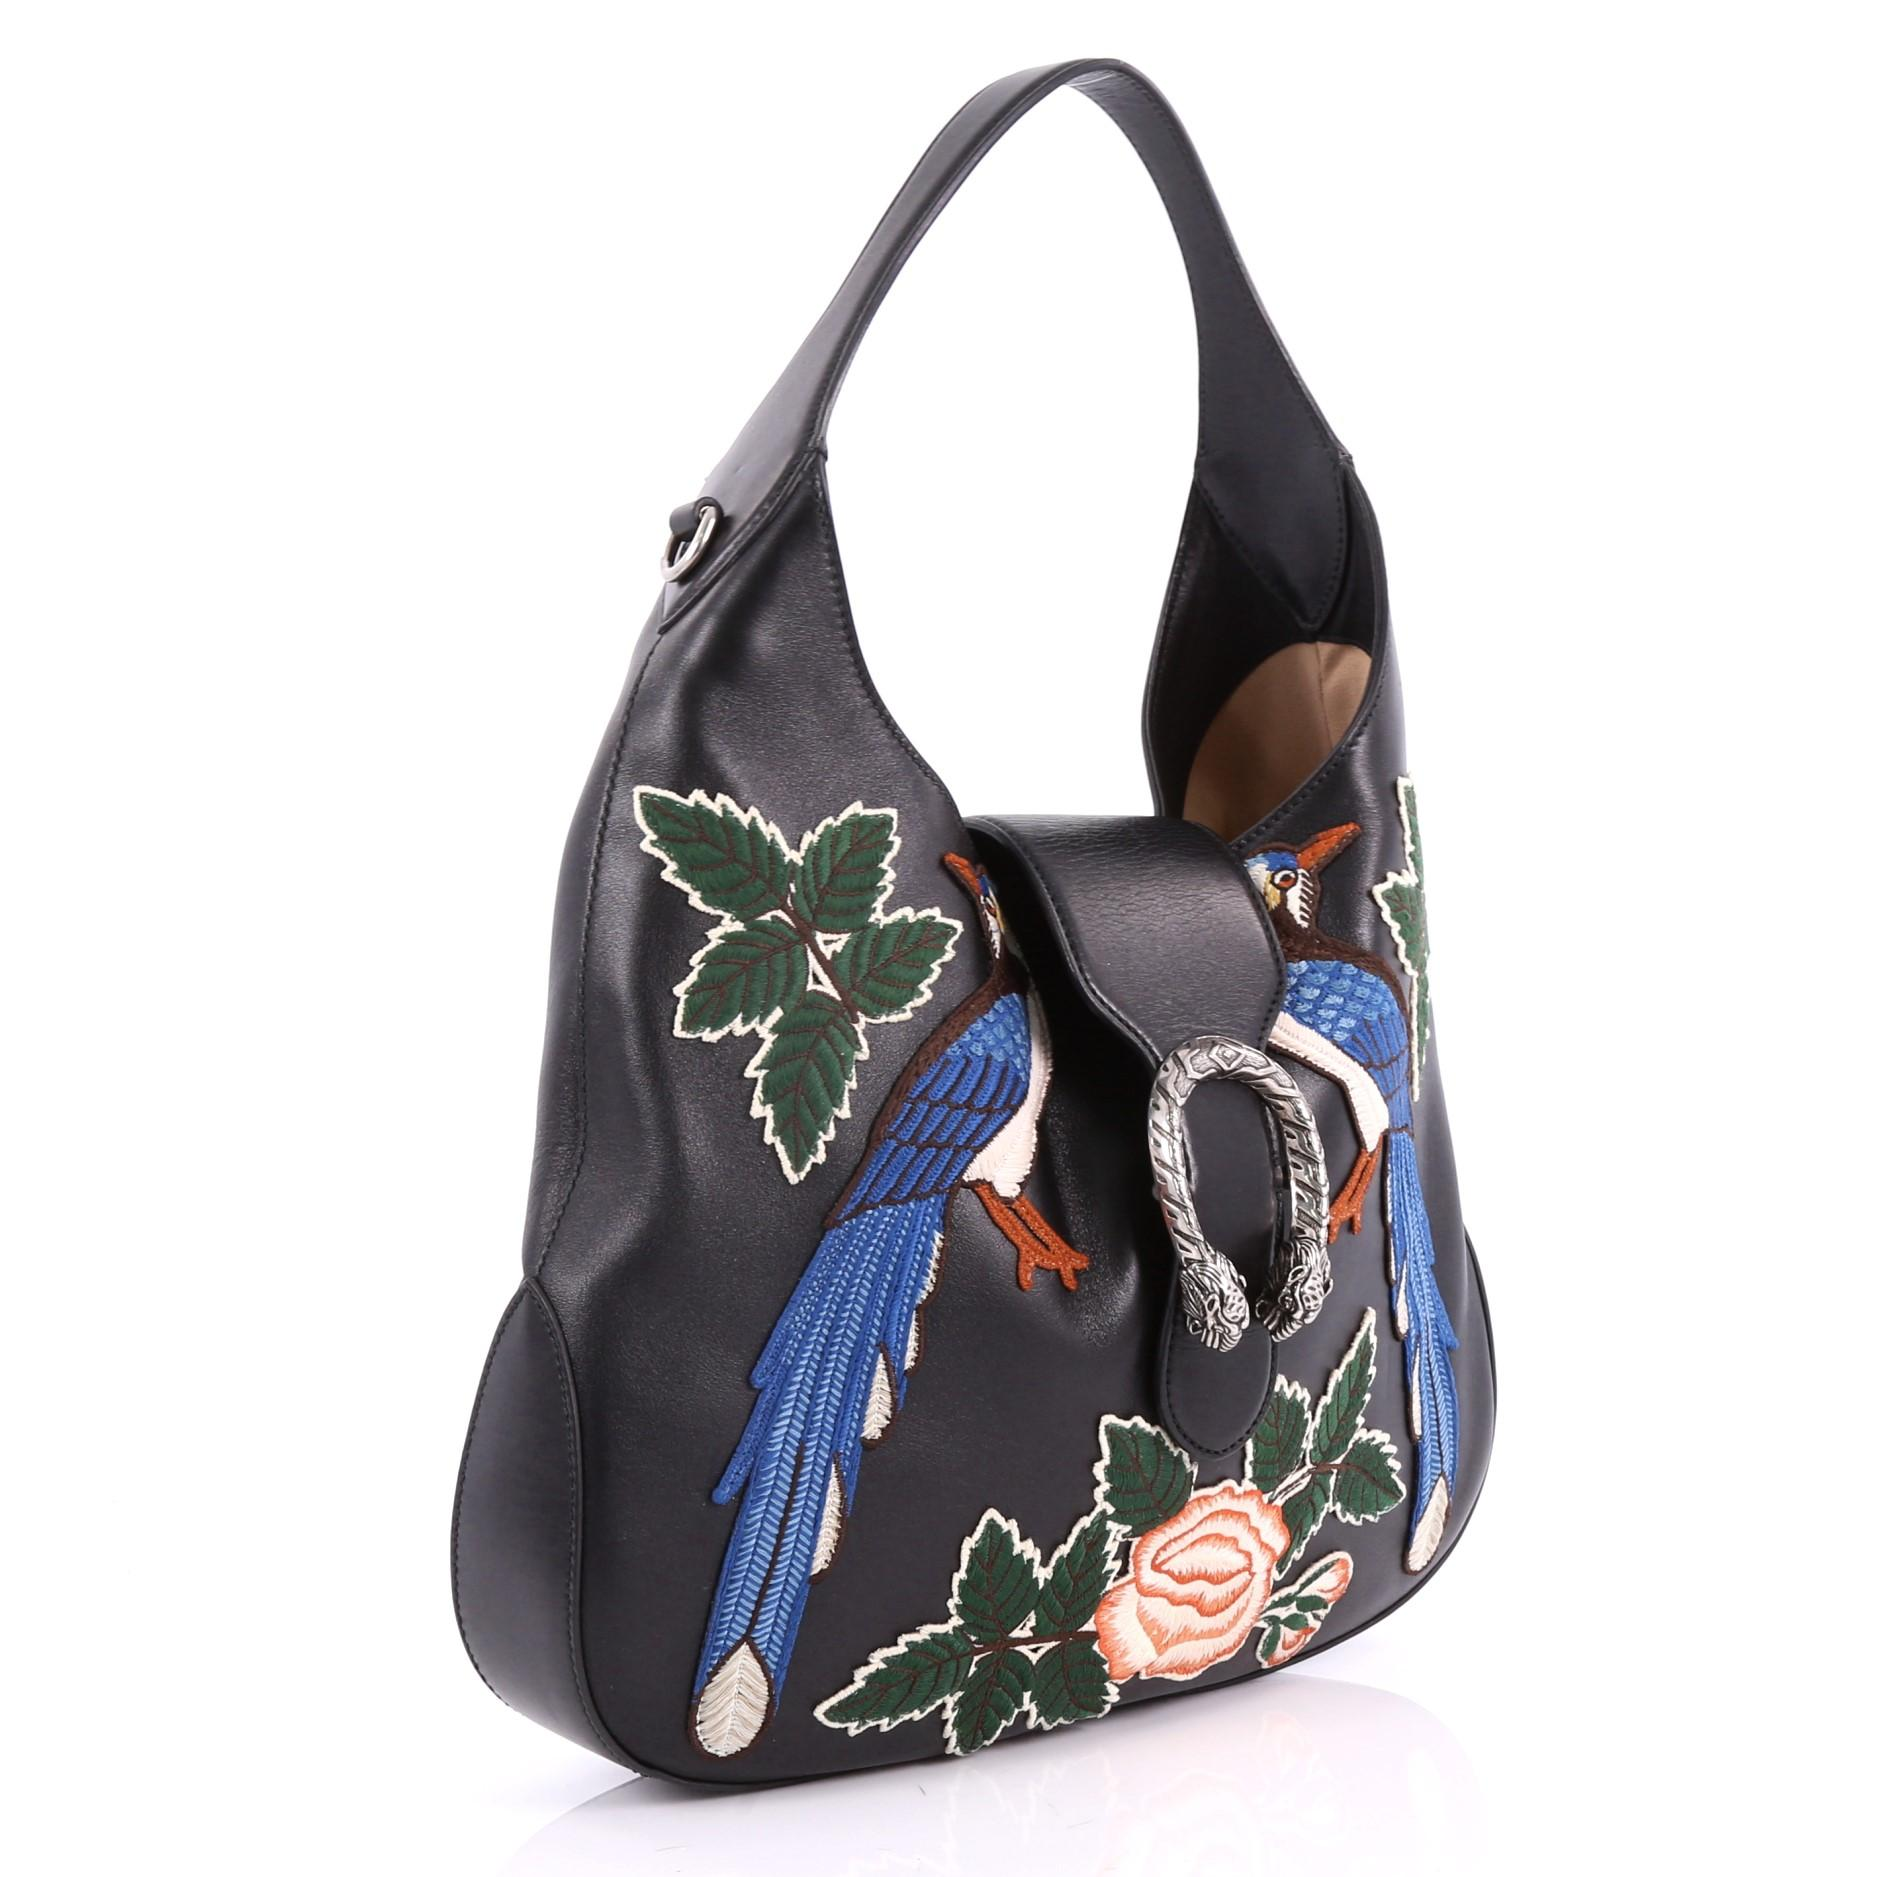 1808274a4470 Gucci Dionysus Hobo Embroidered Leather Small at 1stdibs